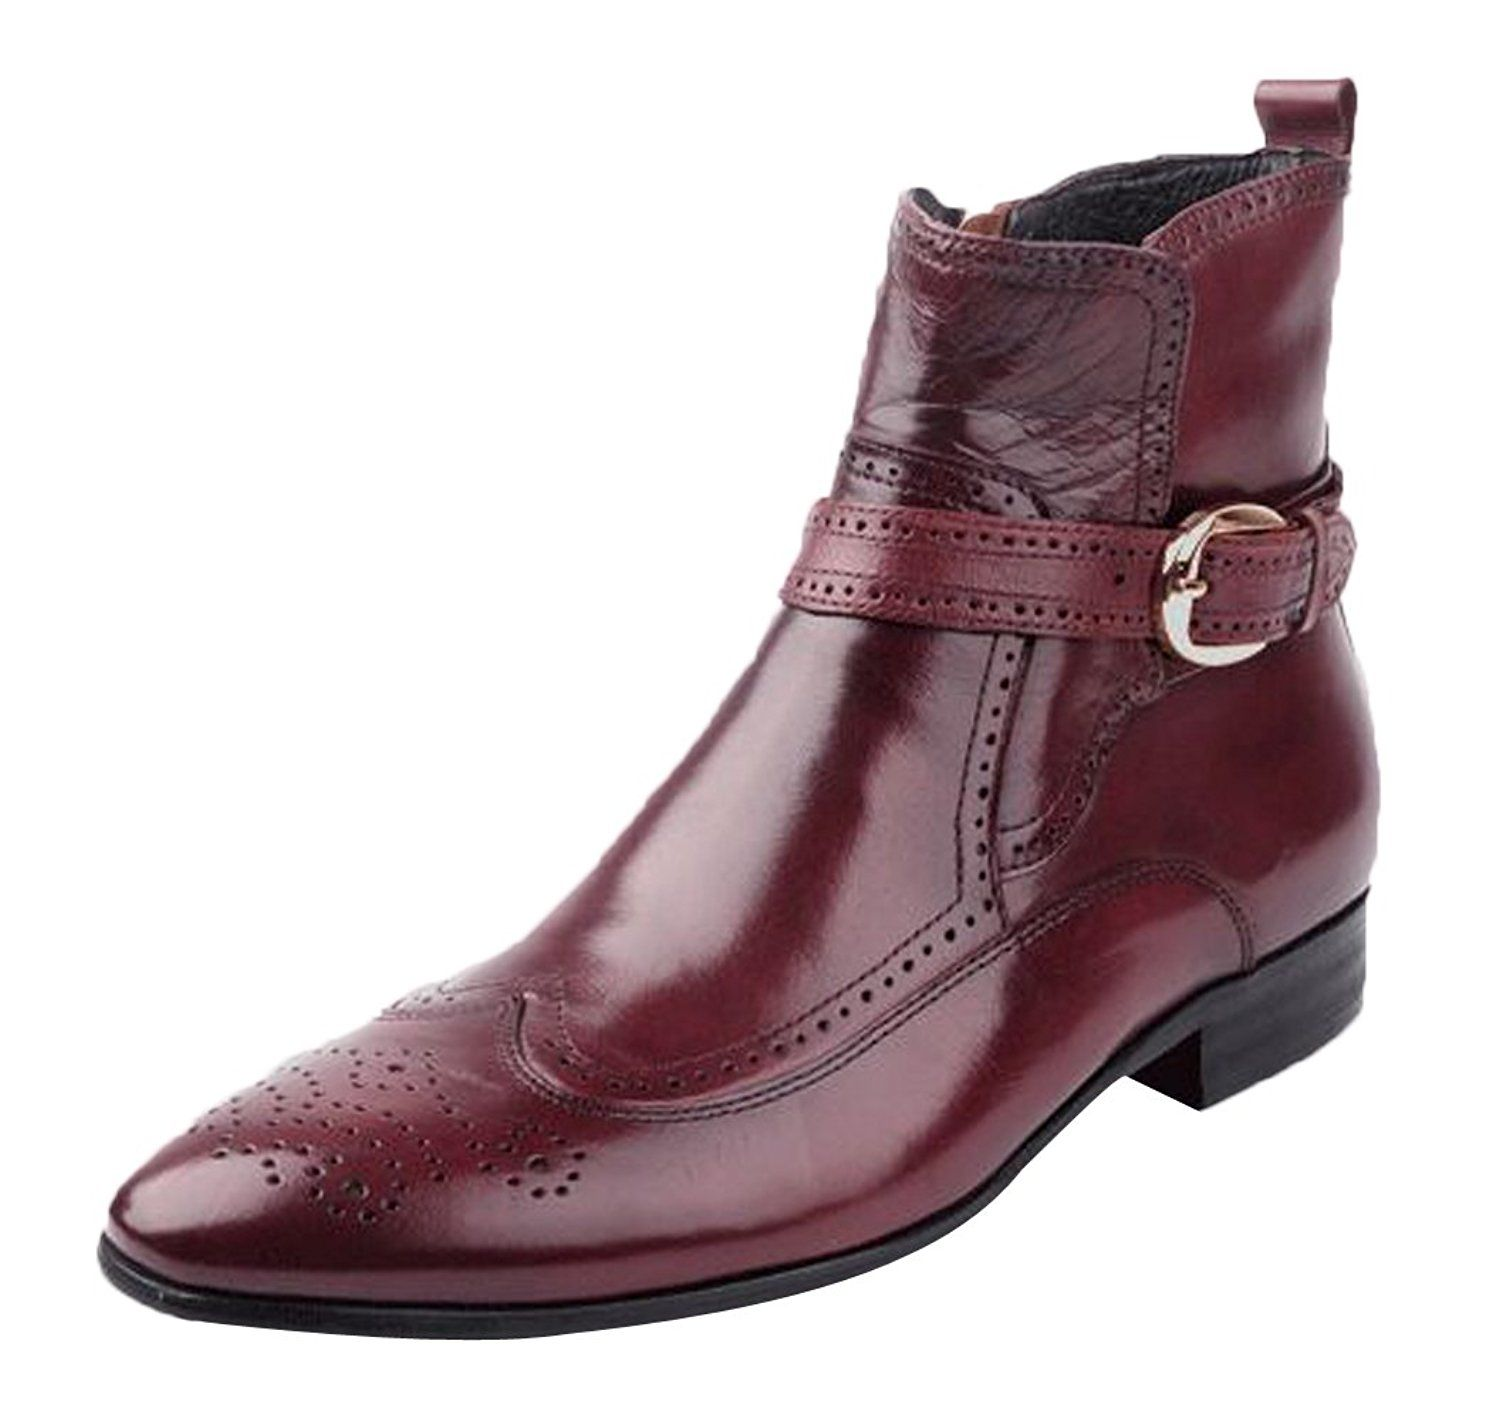 Tidecloth Women's Casual Simple Marten Boots ** You can get additional details at the image link.